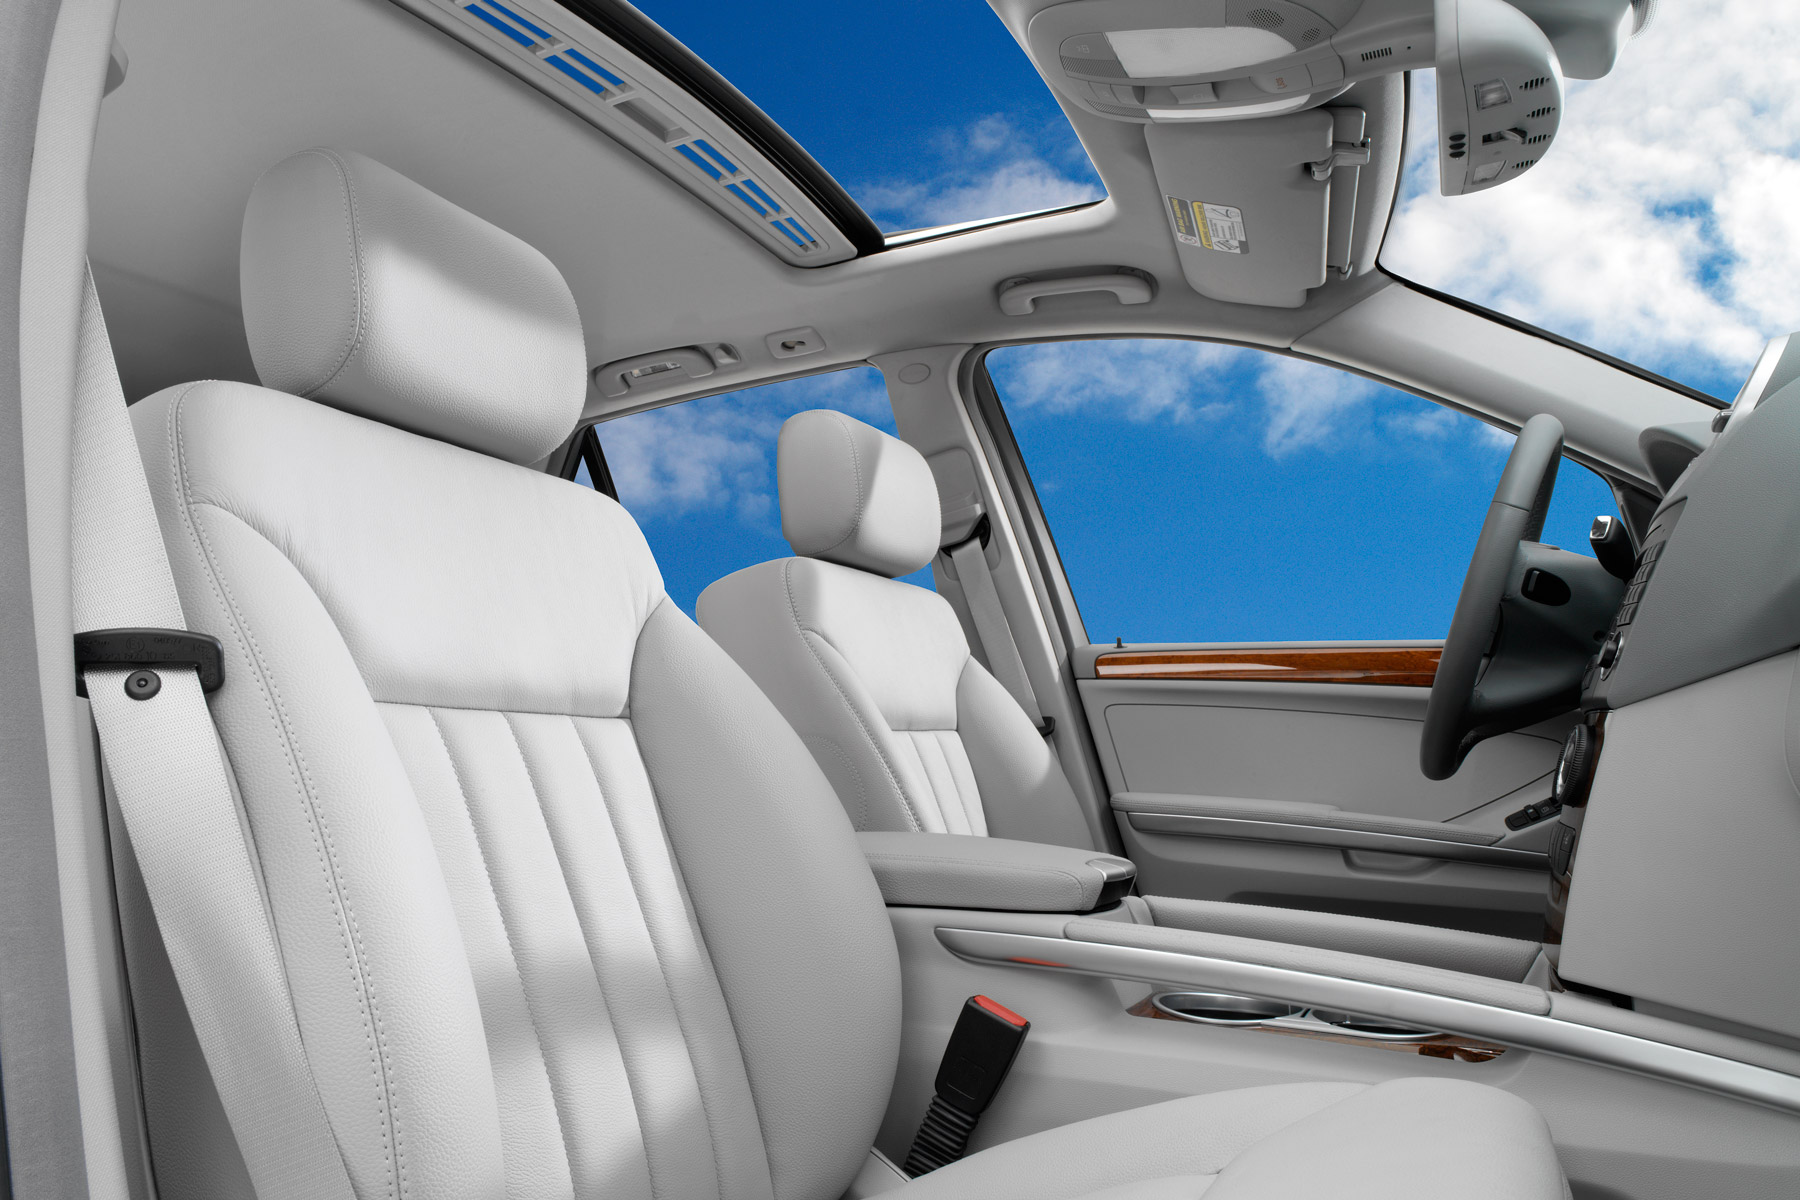 Lexus SUV Sunroof Automotive Photography| Dovis Bird Agency Reps